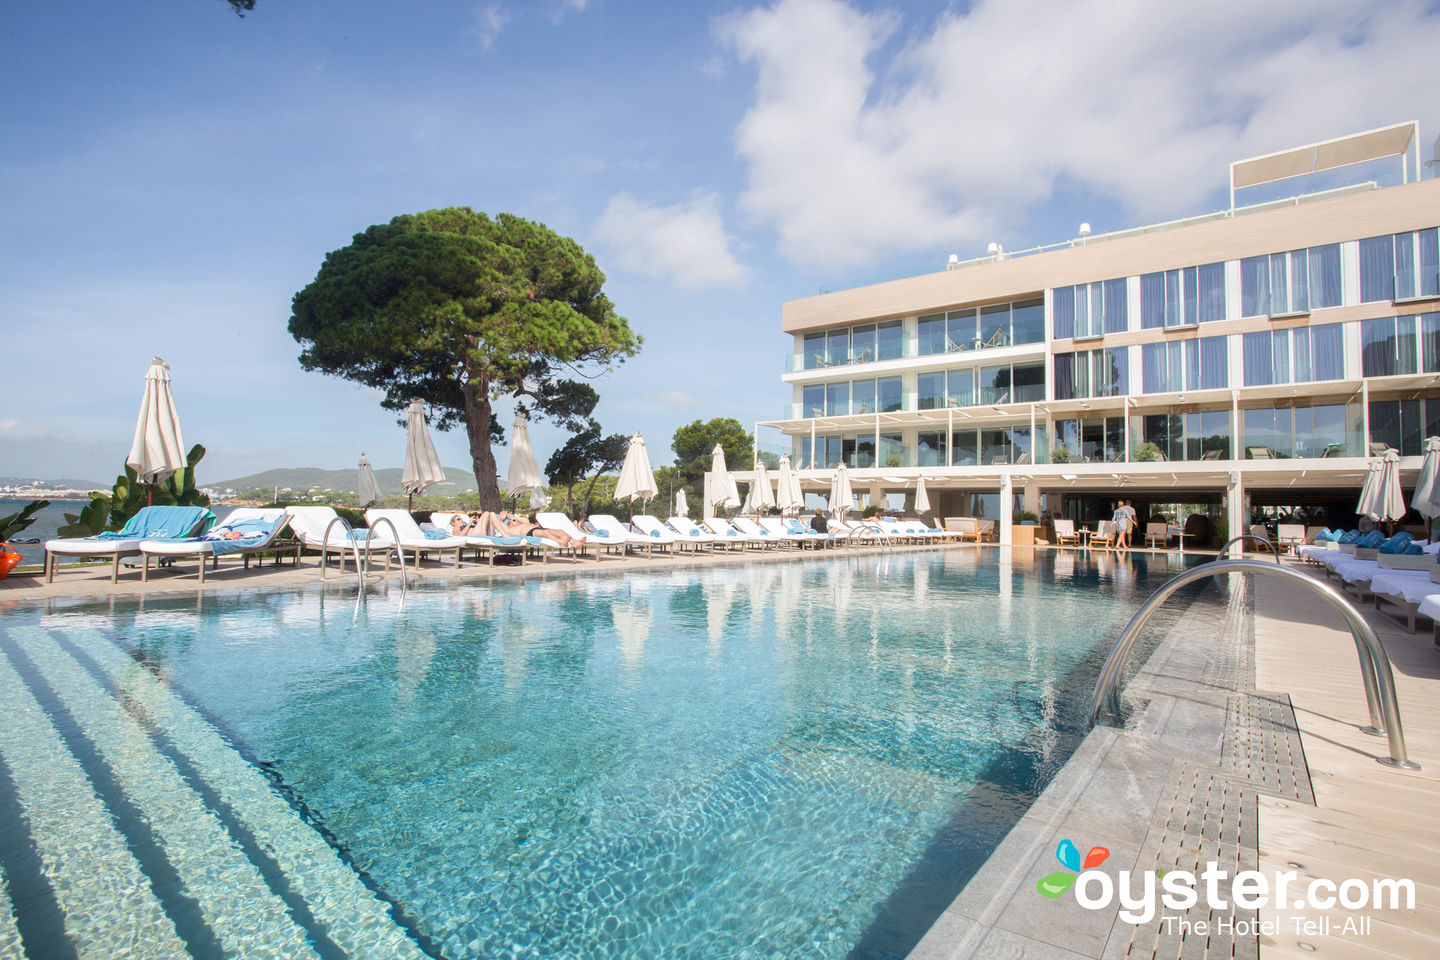 The 11 Best Party Hotels in Ibiza, Spain | Oyster com